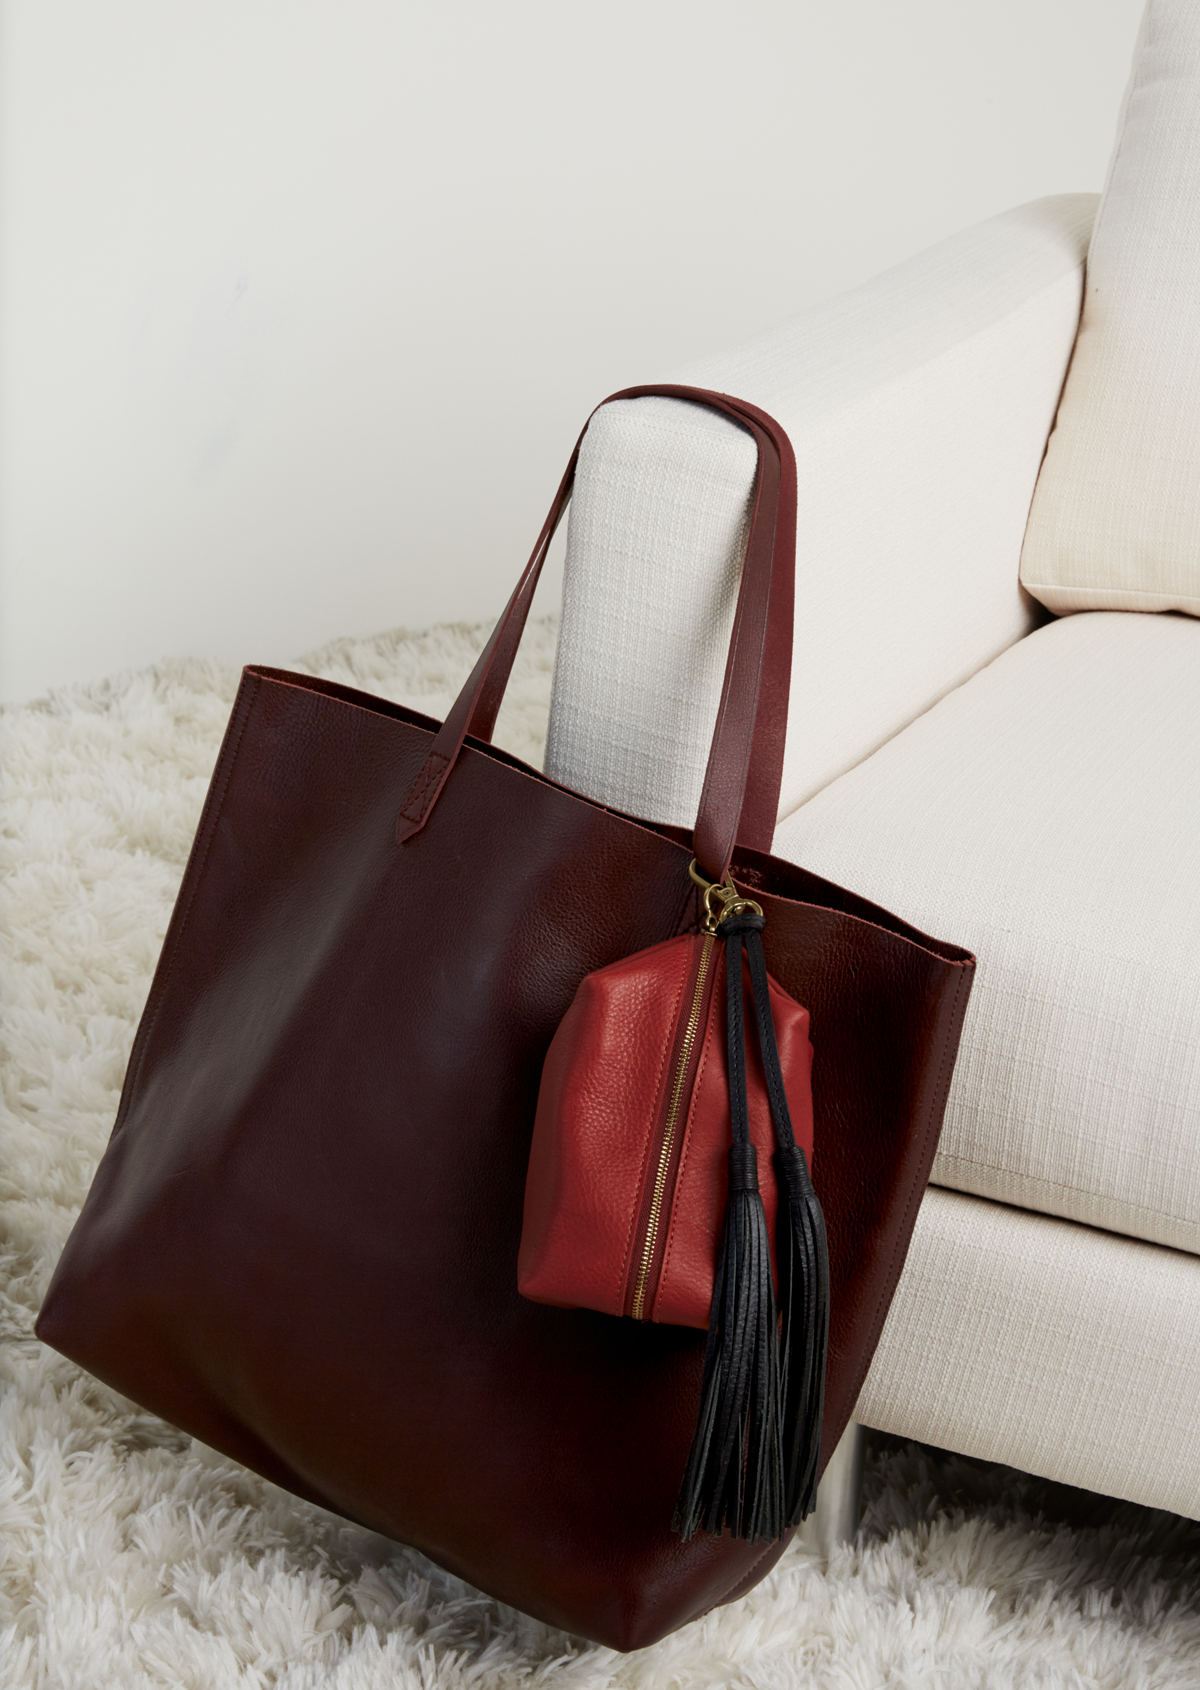 60f1af20dc5 madewell transport tote in dark cabernet, leather travel bag + leather  tassel.  totewell